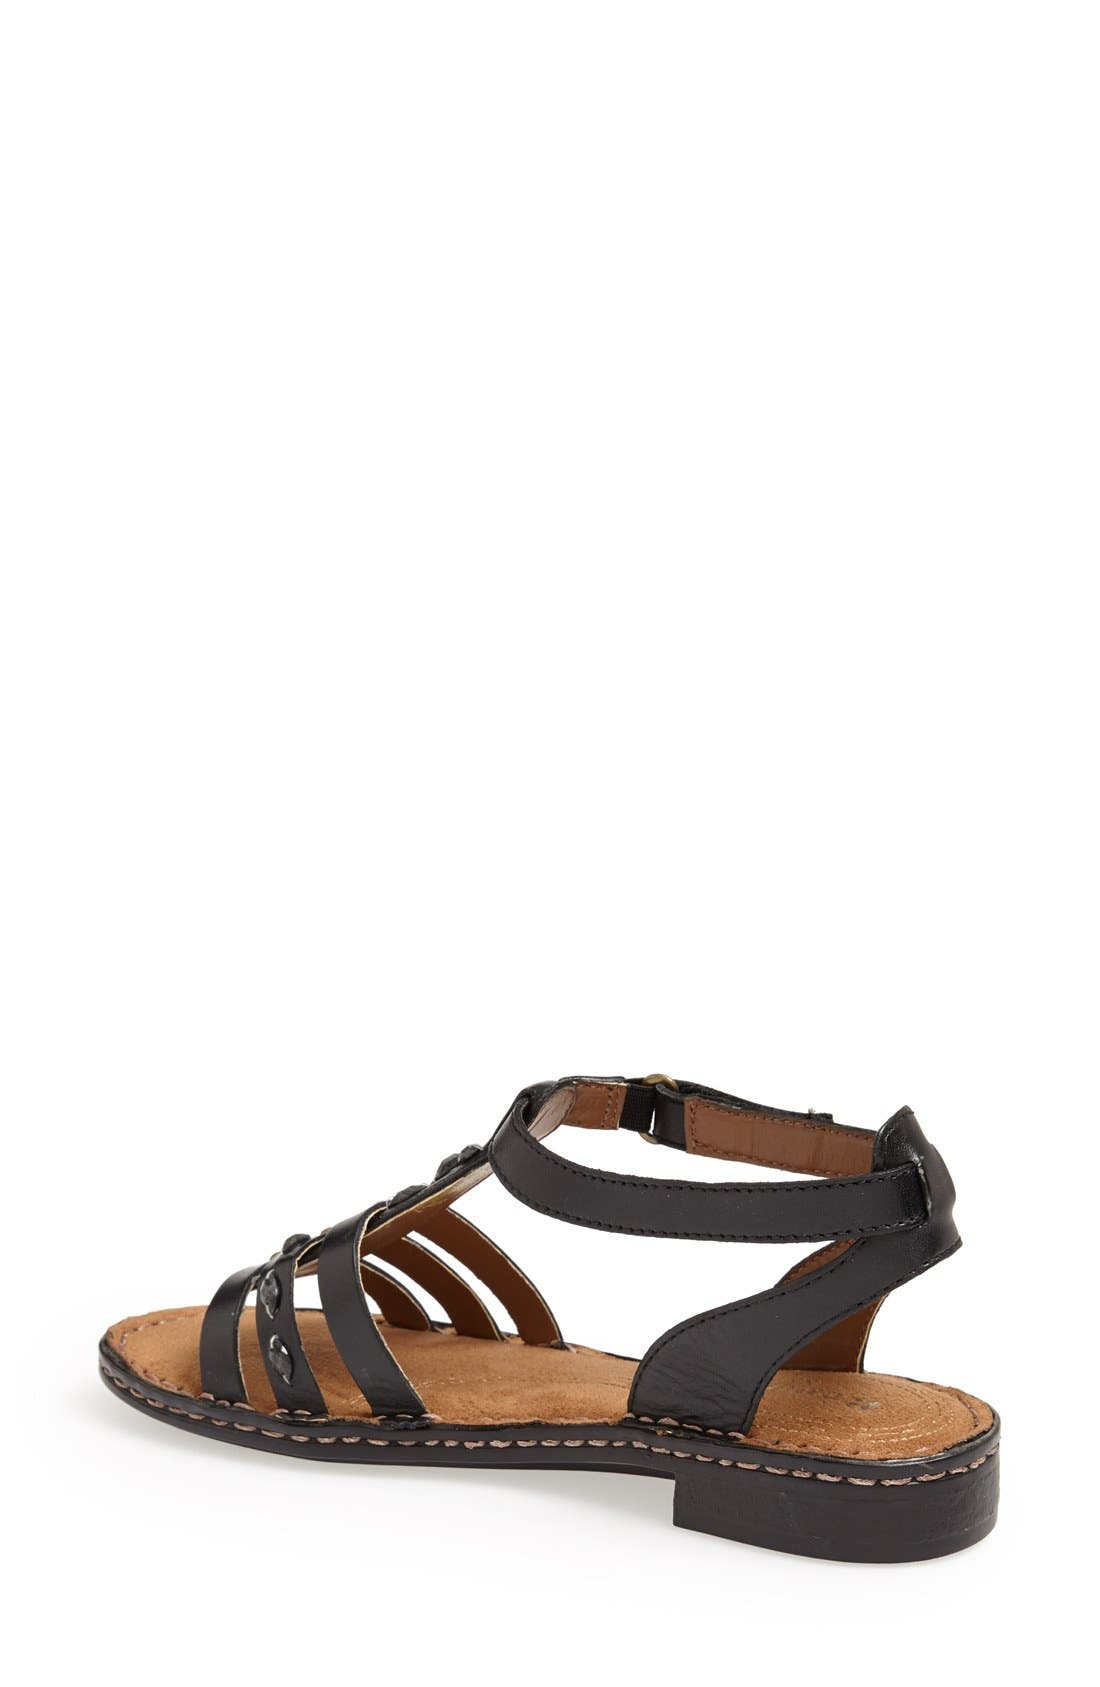 Alternate Image 2  - Naturalizer 'Rhapsody' Sandal